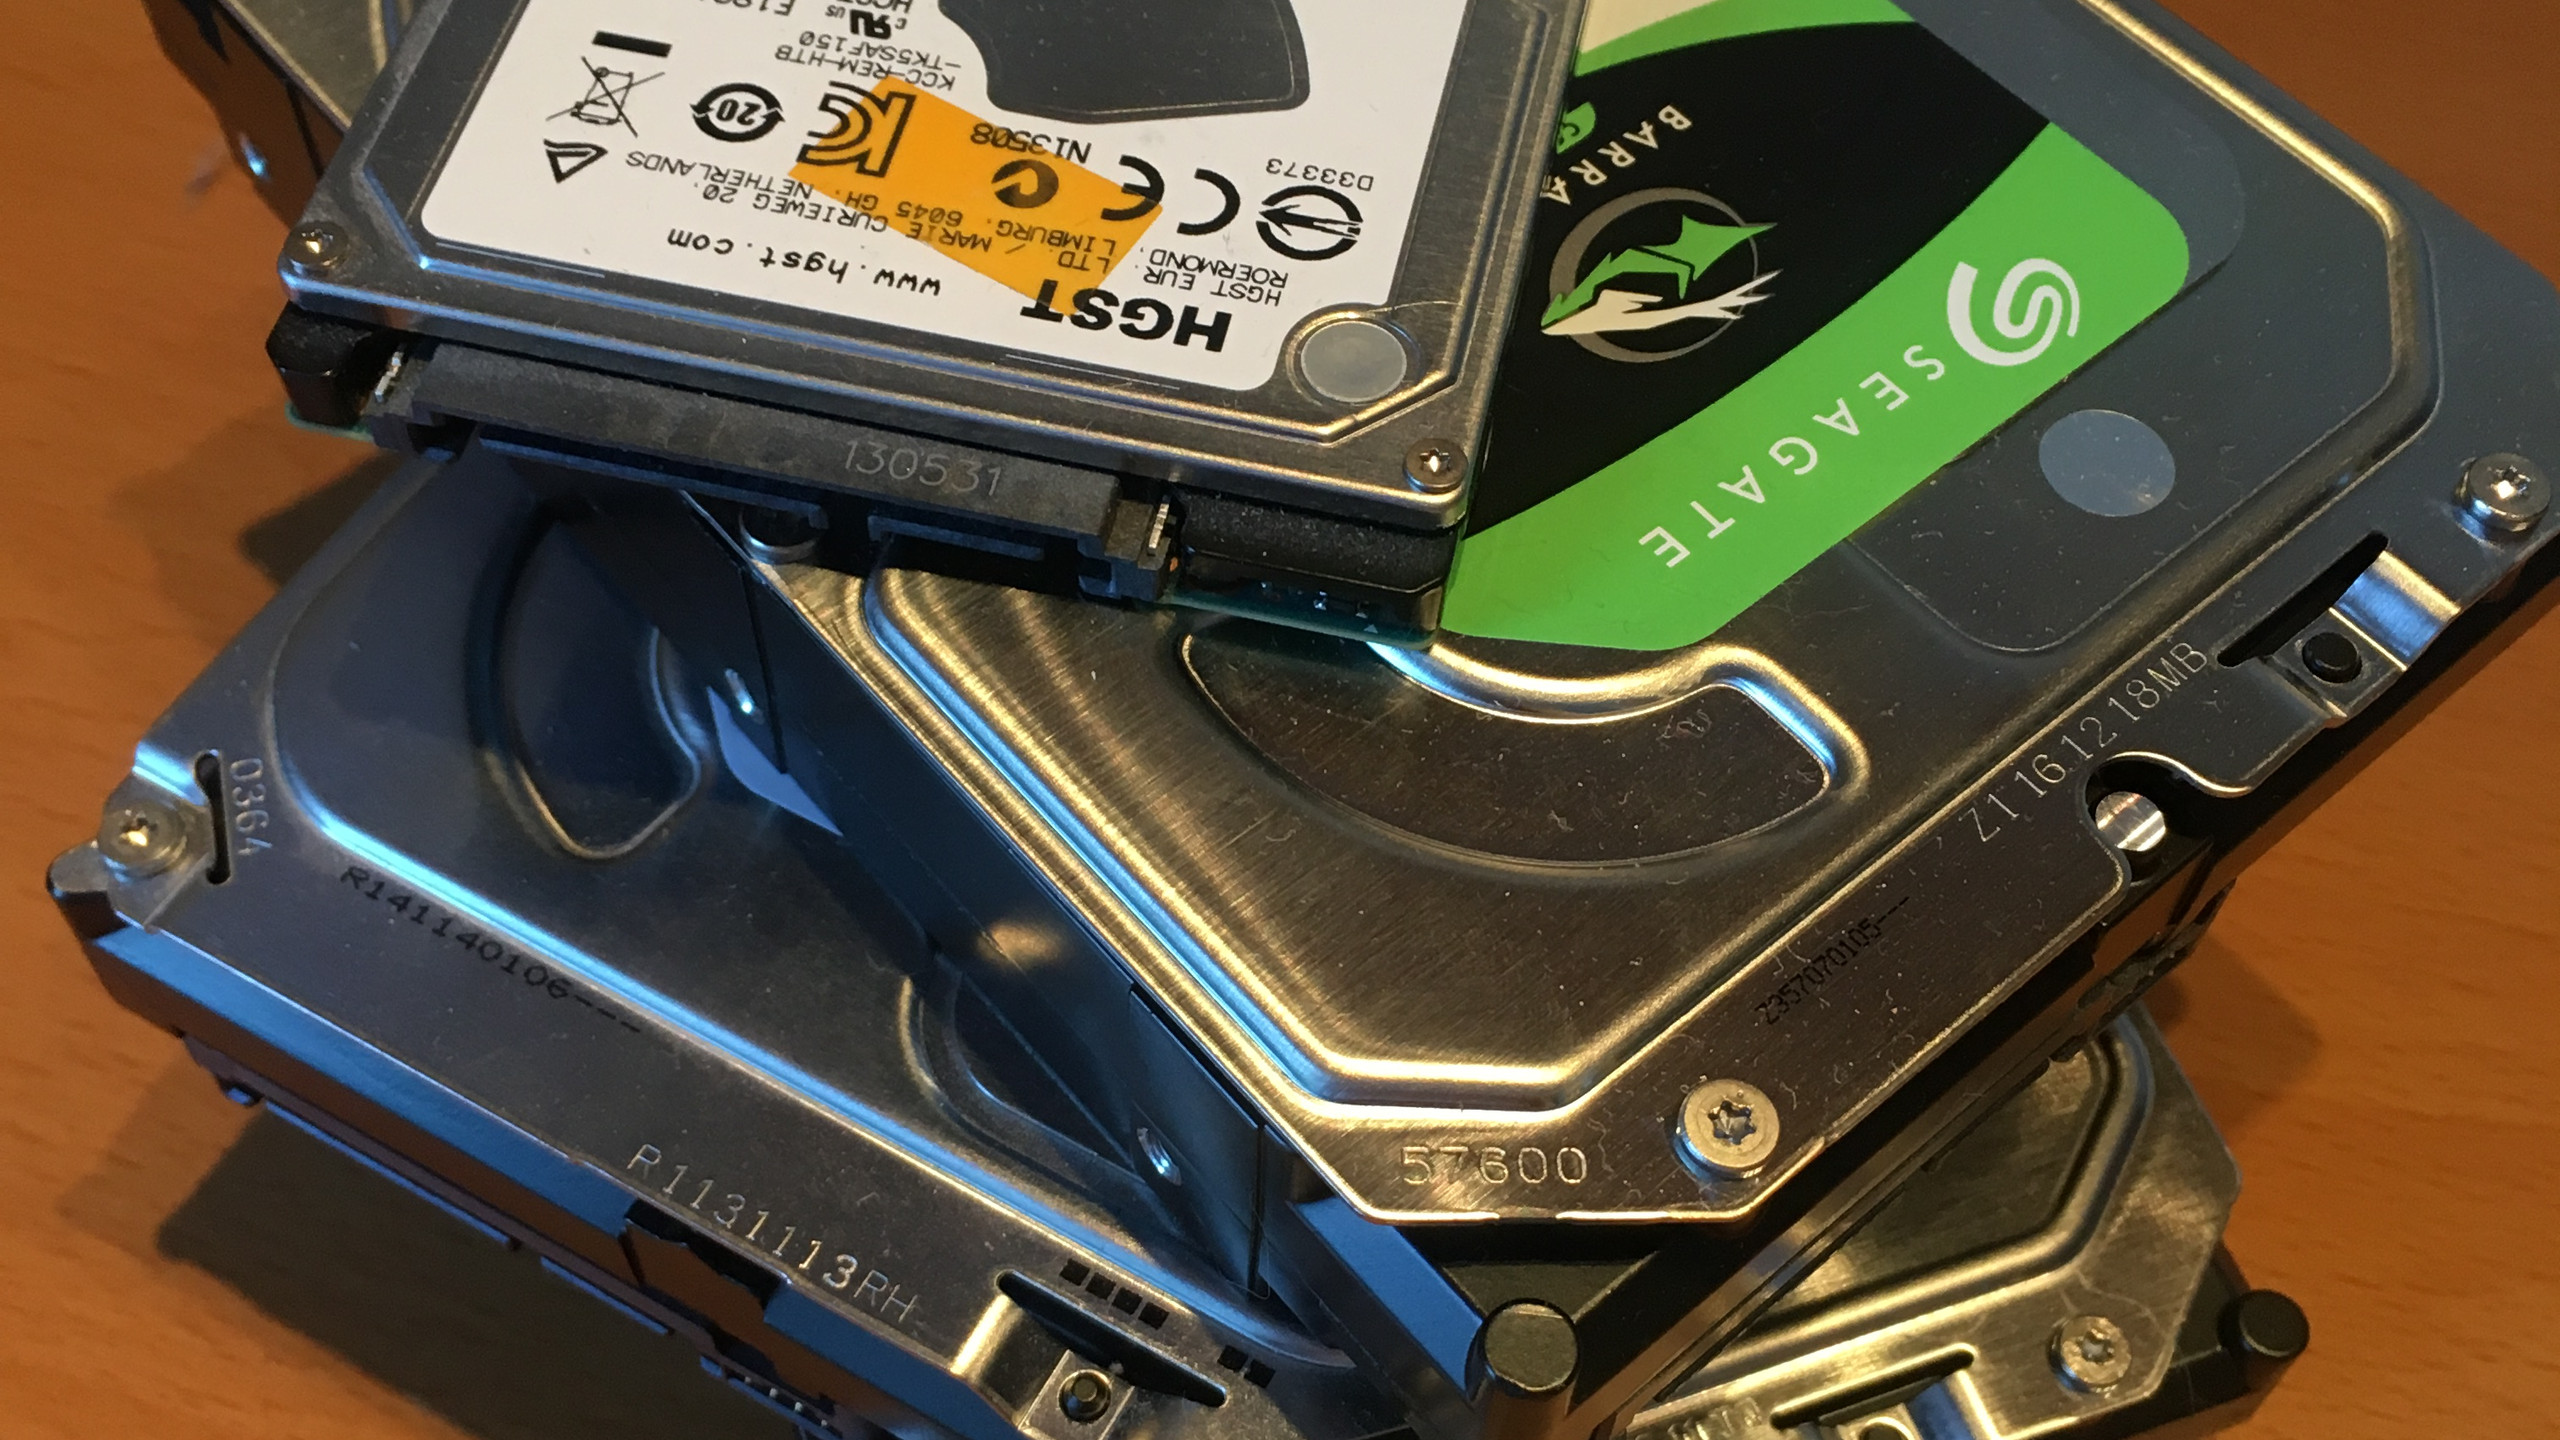 Pile of Drives